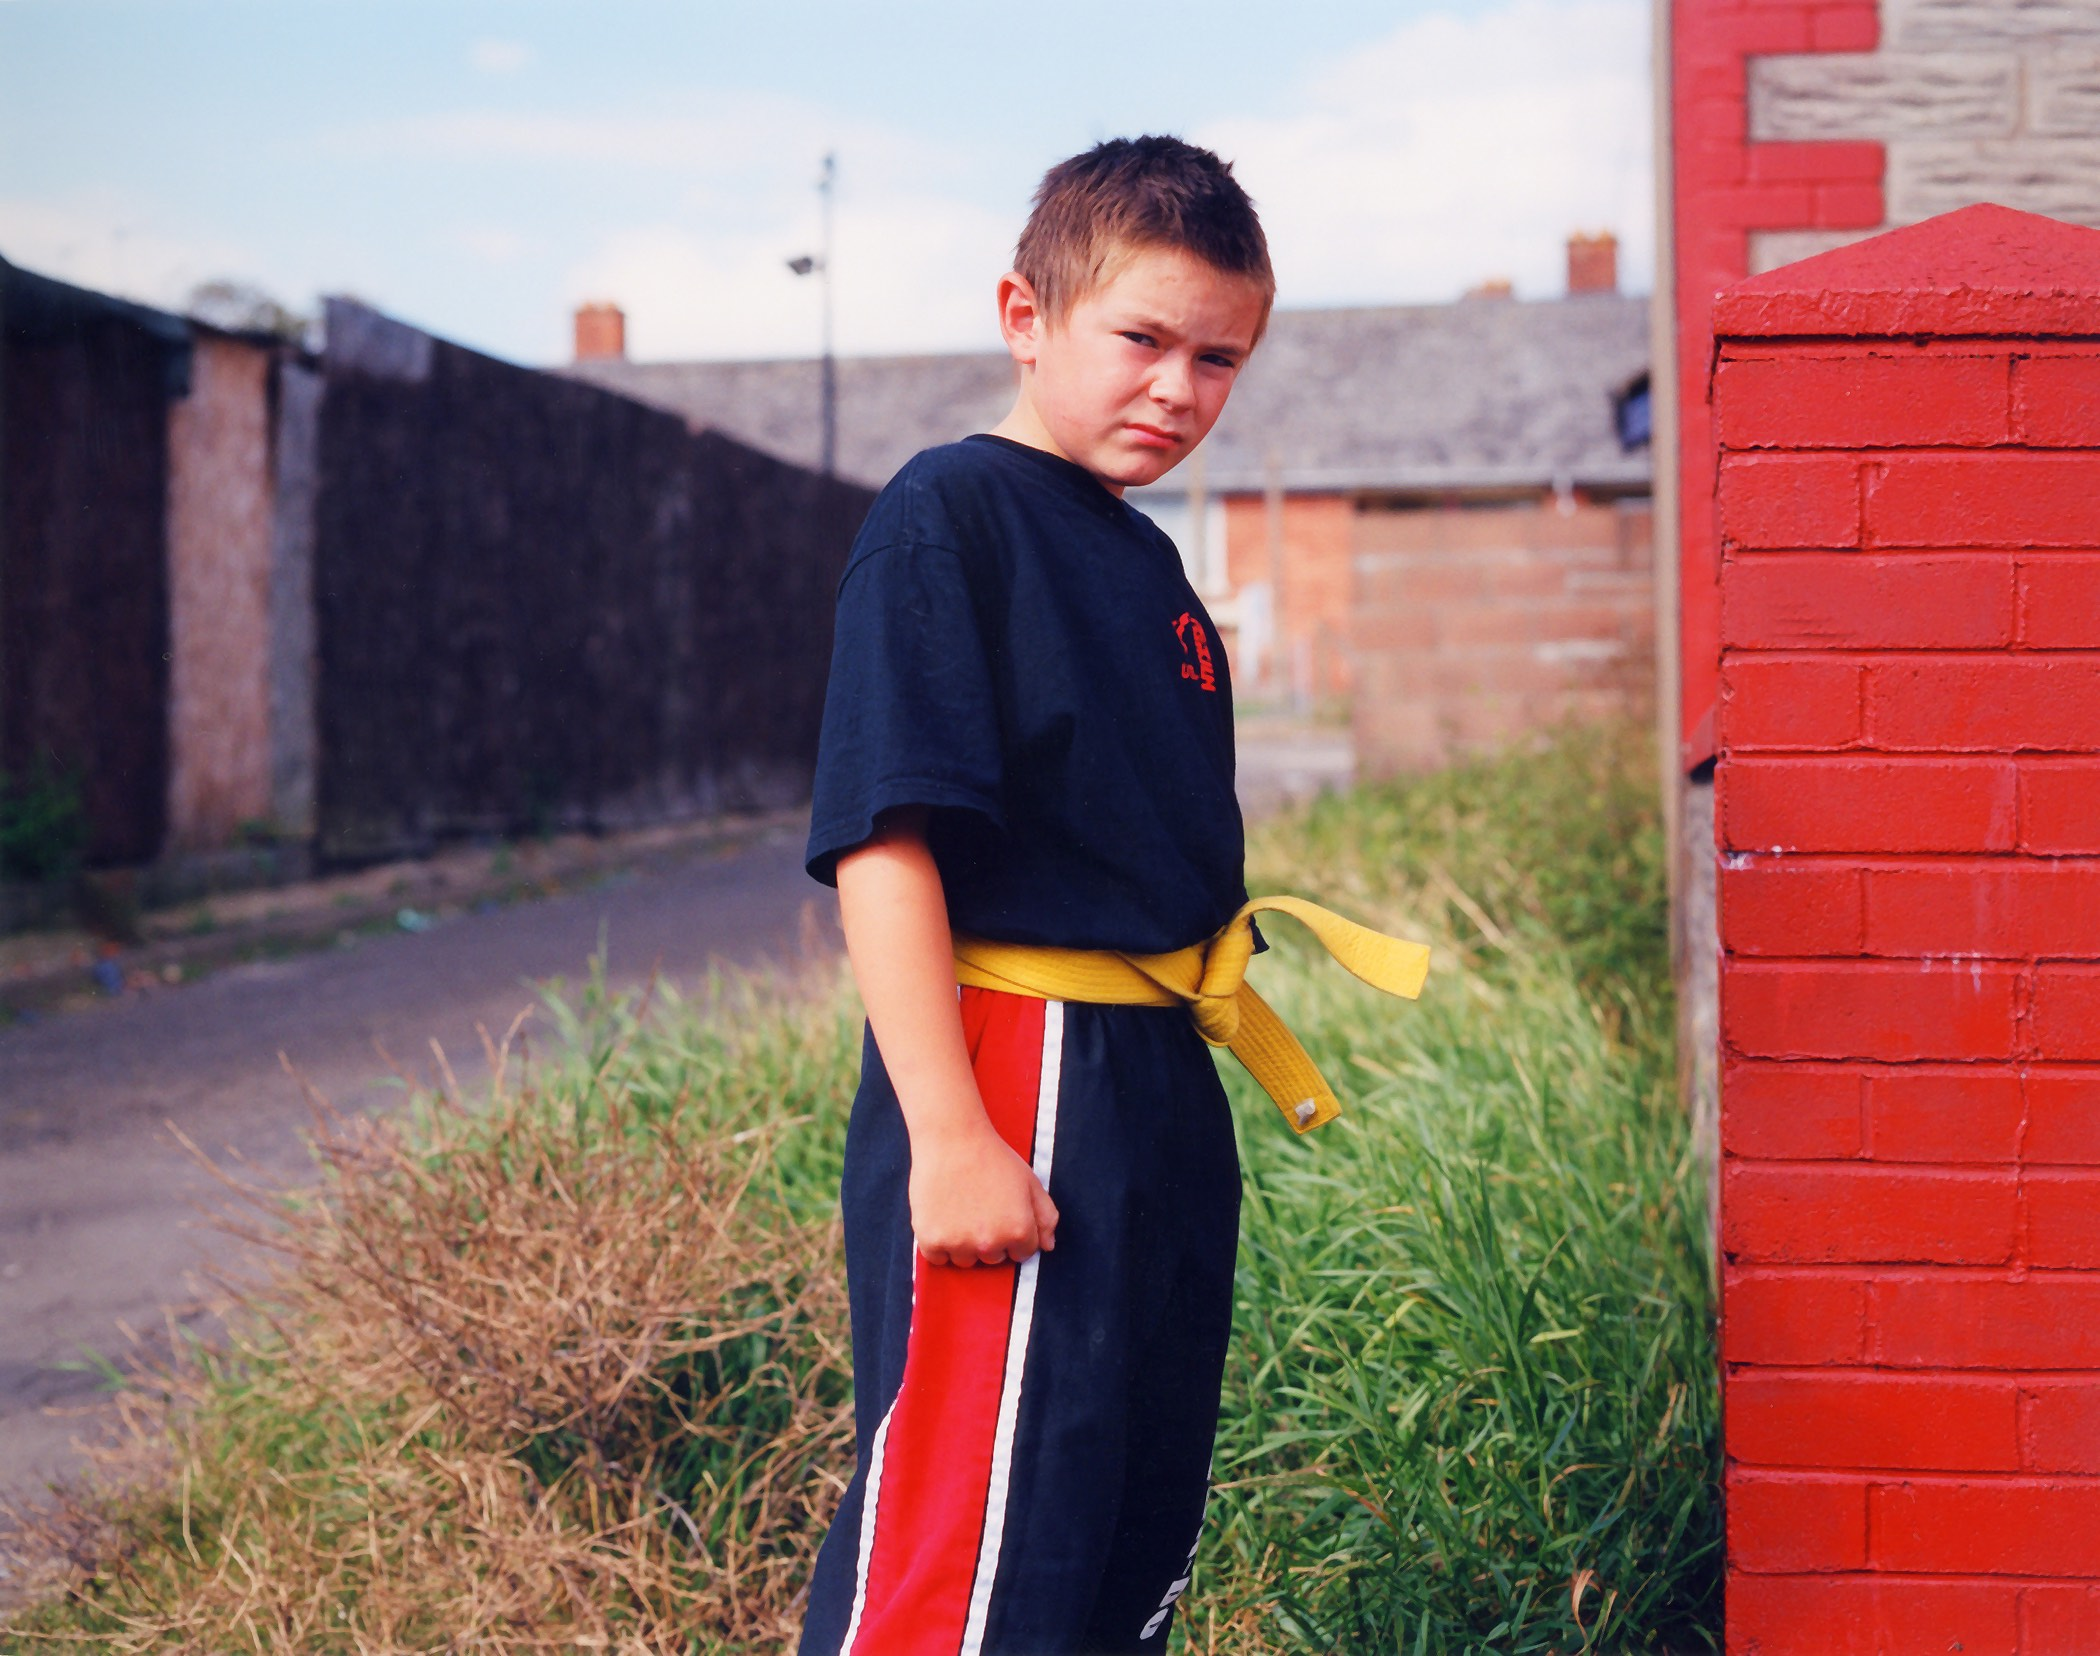 Conor from the 'Young Carers' series